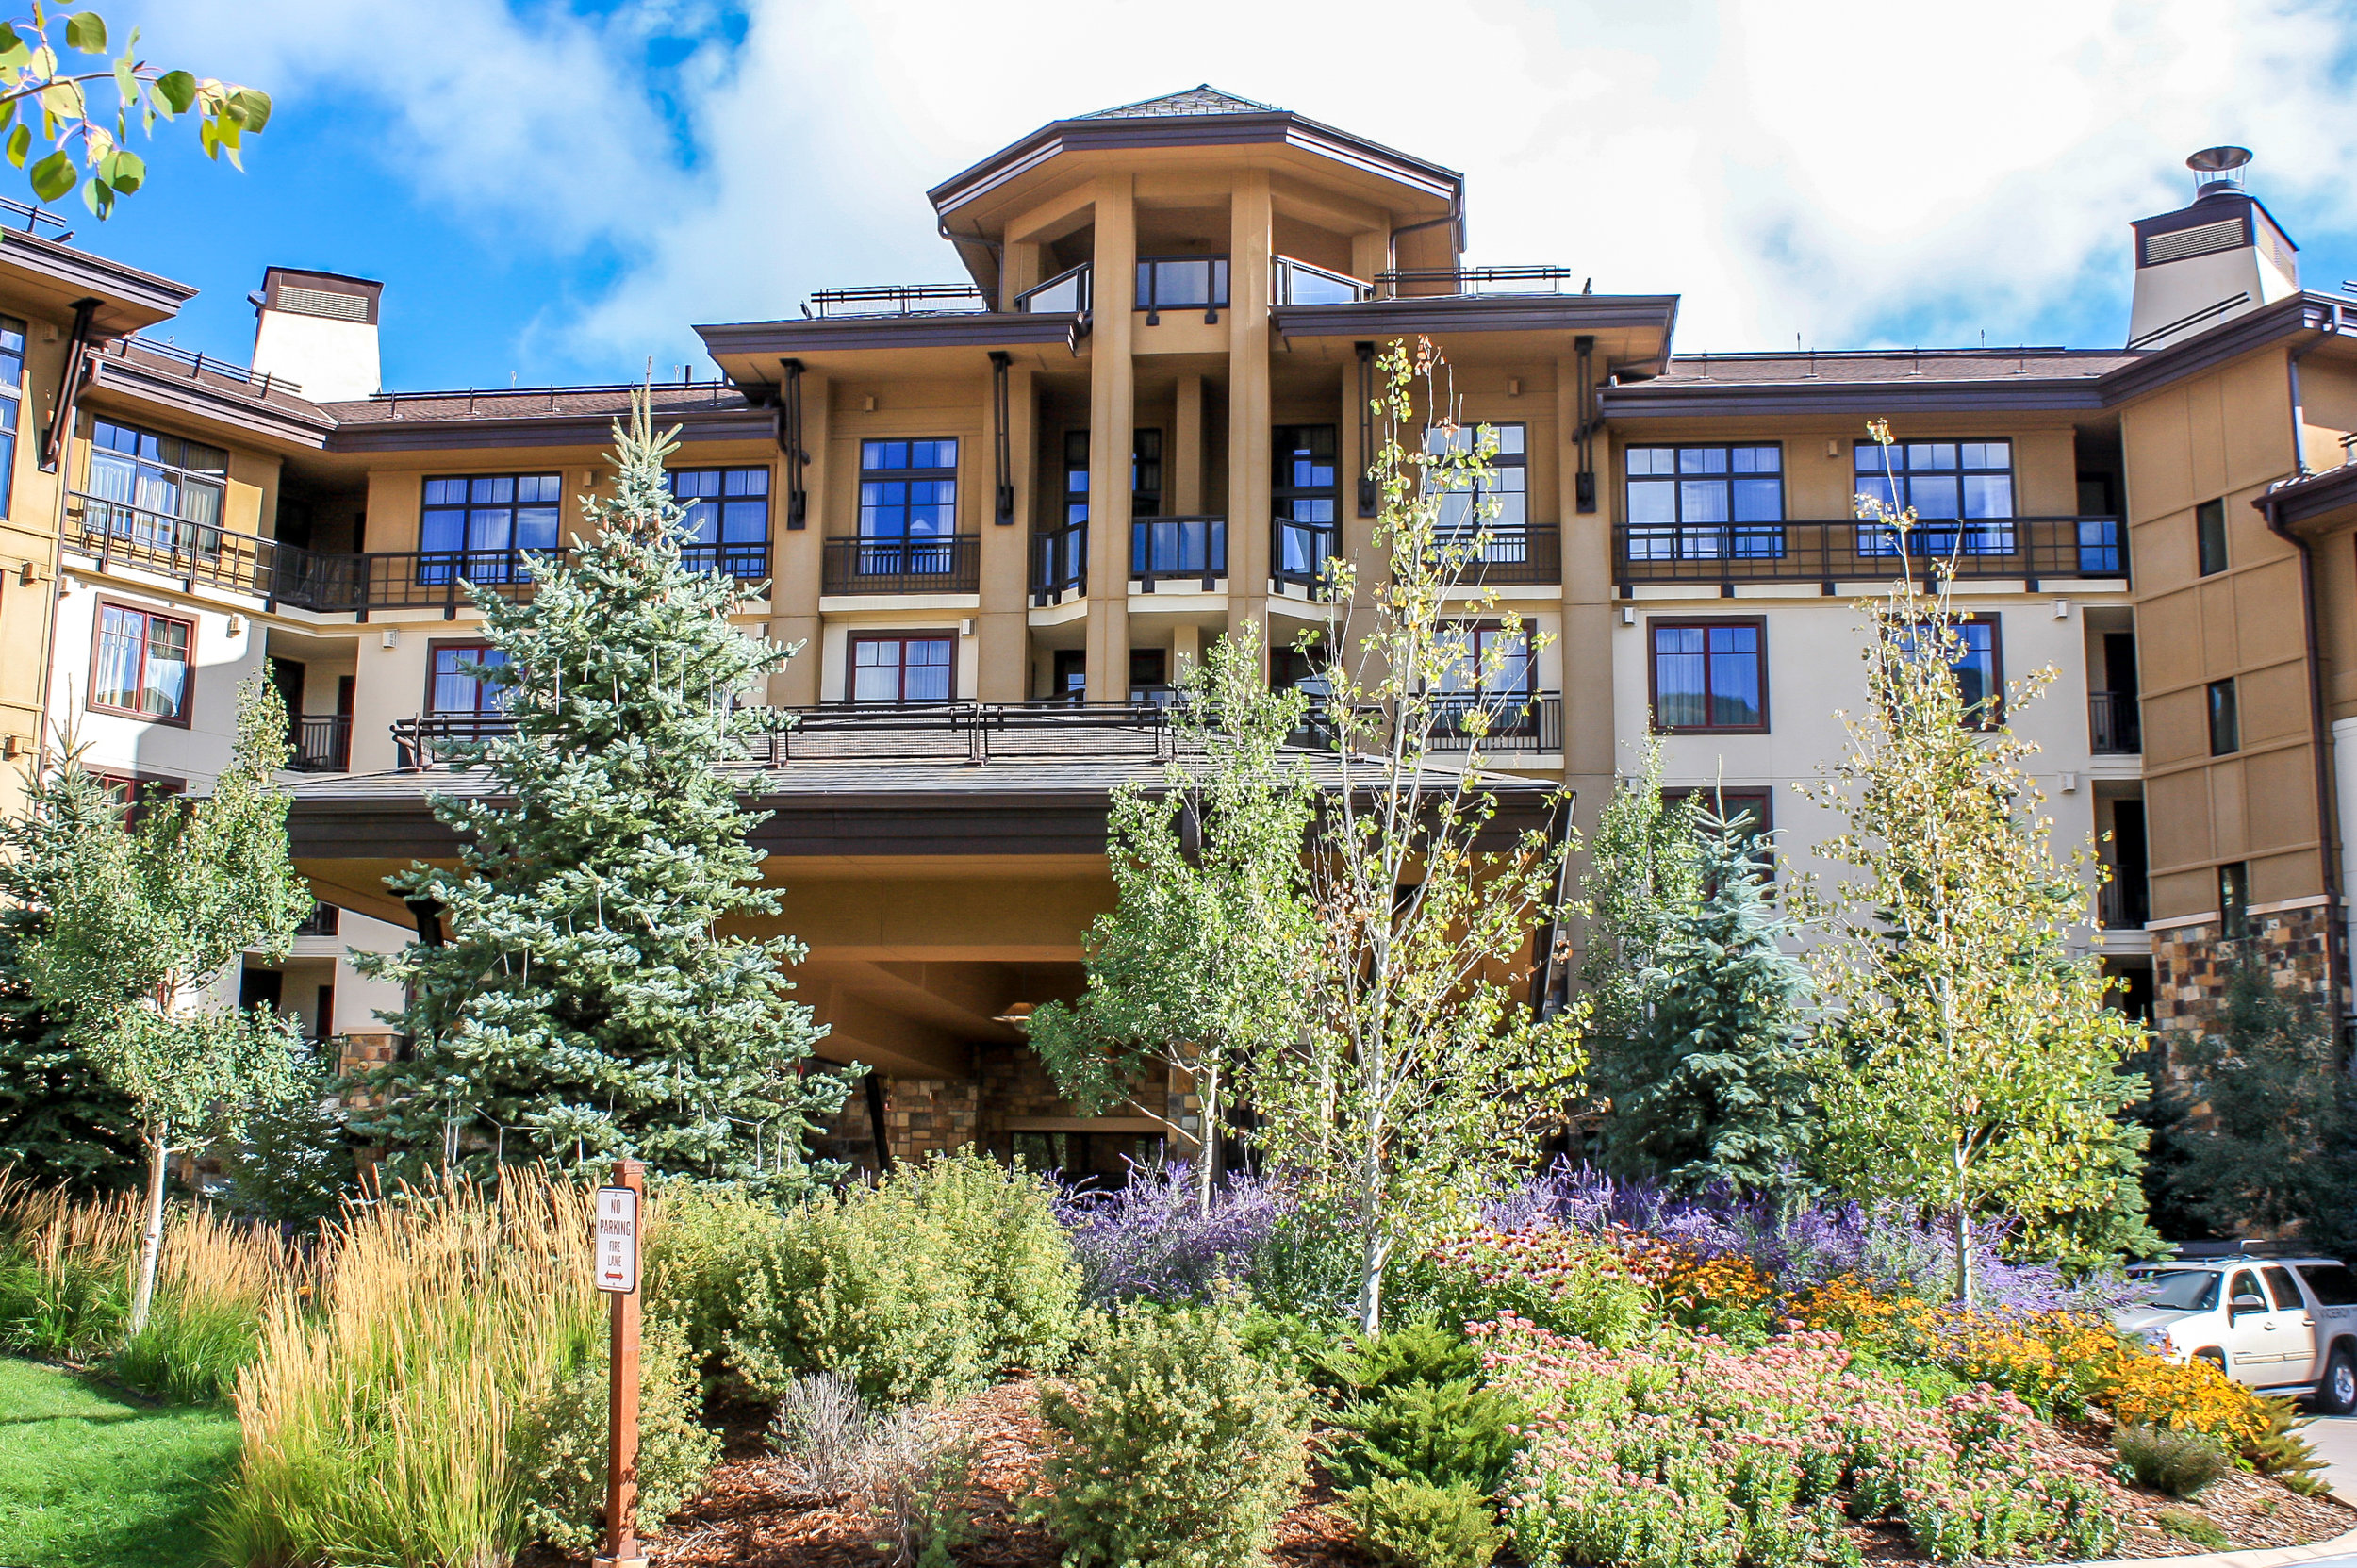 """<img src="""" studioINSITE_Viceroy_Entry-2 """"alt=""""  Resort, mountain resort, hotel, vacation homes, condominium, roof deck, design over structure, pool, site planning, landscape architecture  """" title=""""Viceroy at Snowmass""""/>"""